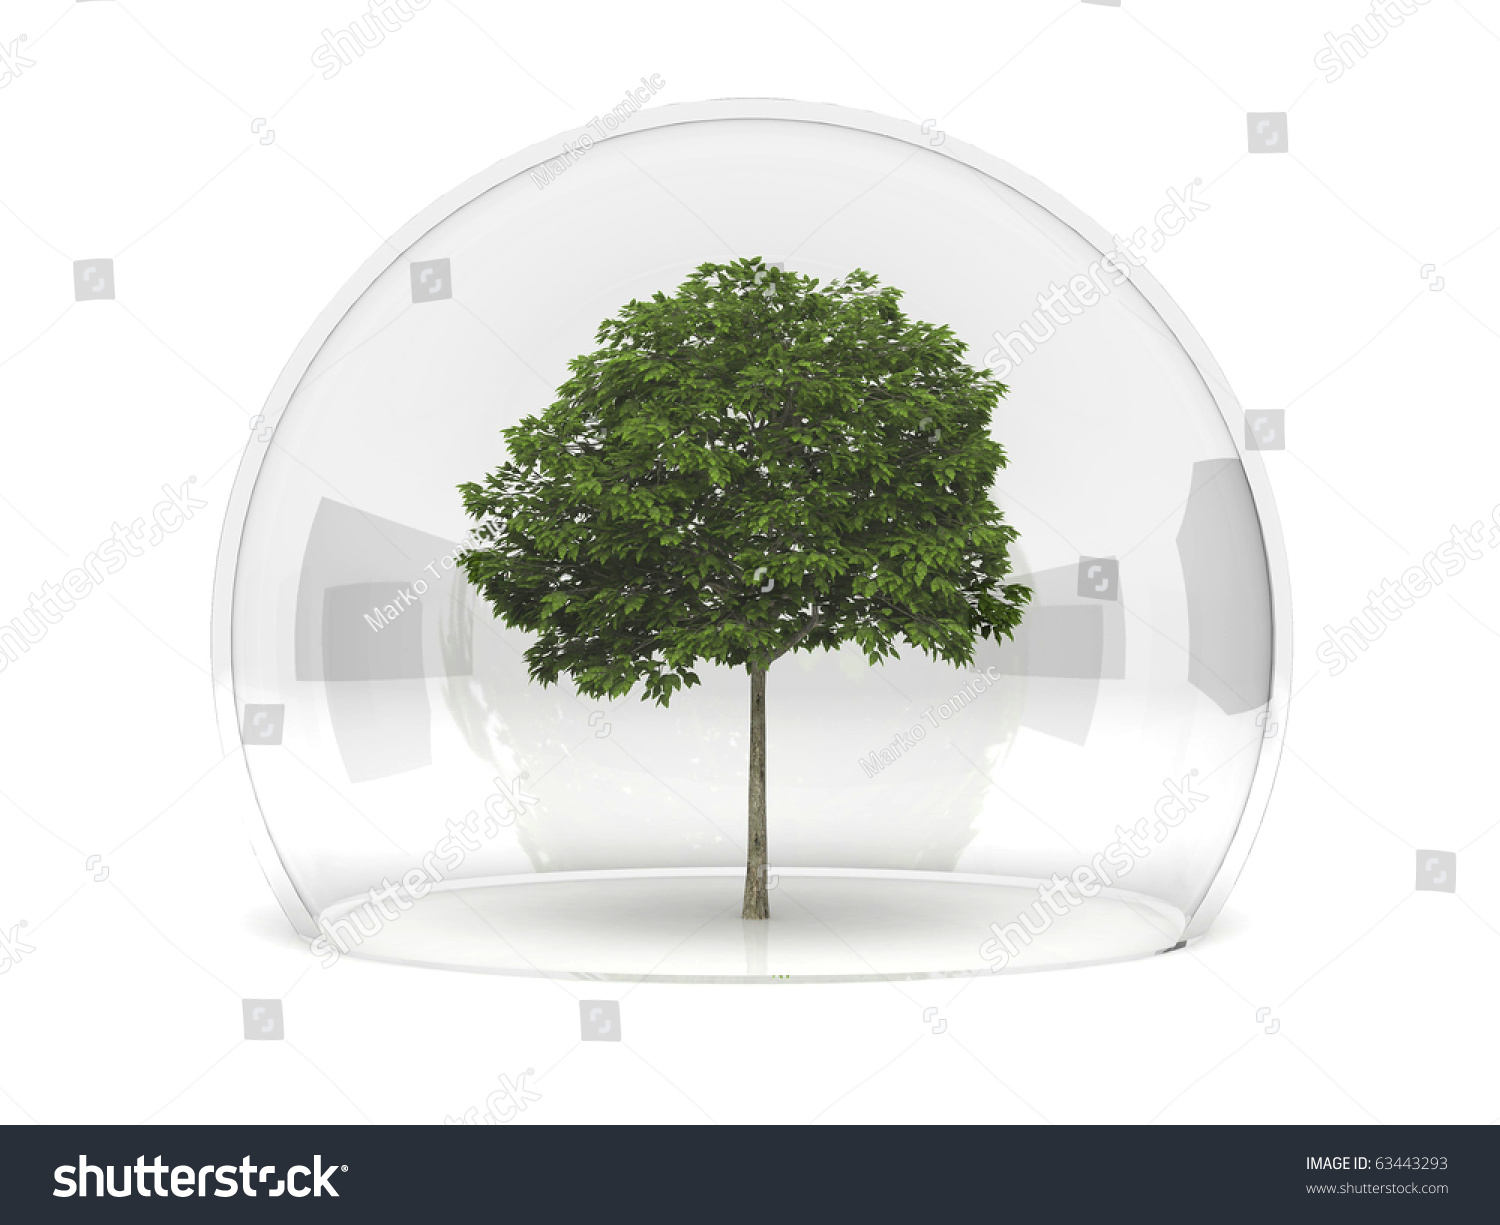 hight resolution of a sorbus tree growing under a glass dome in safety